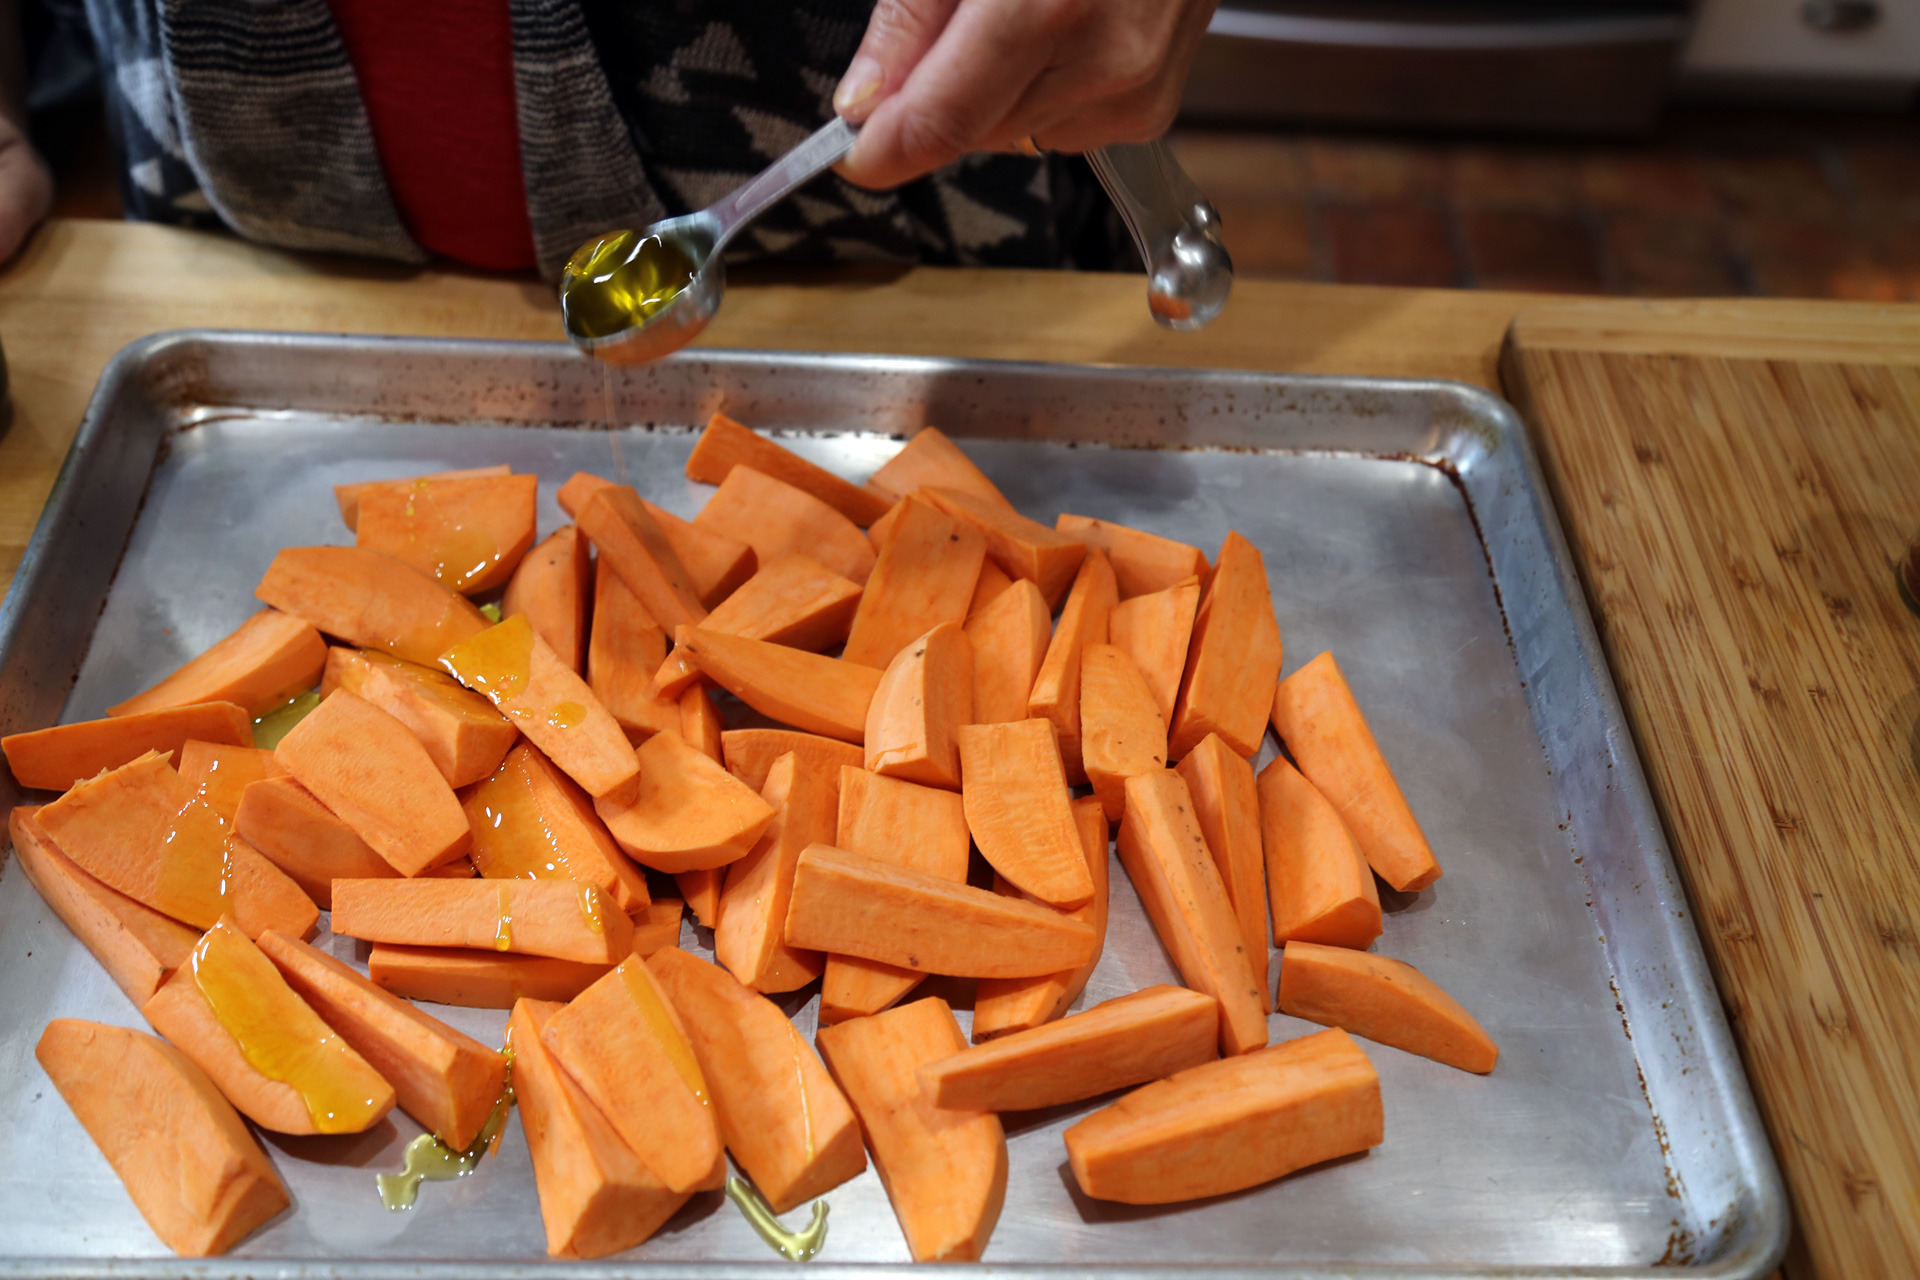 Add the yams to a large rimmed baking sheet and drizzle with the olive oil.